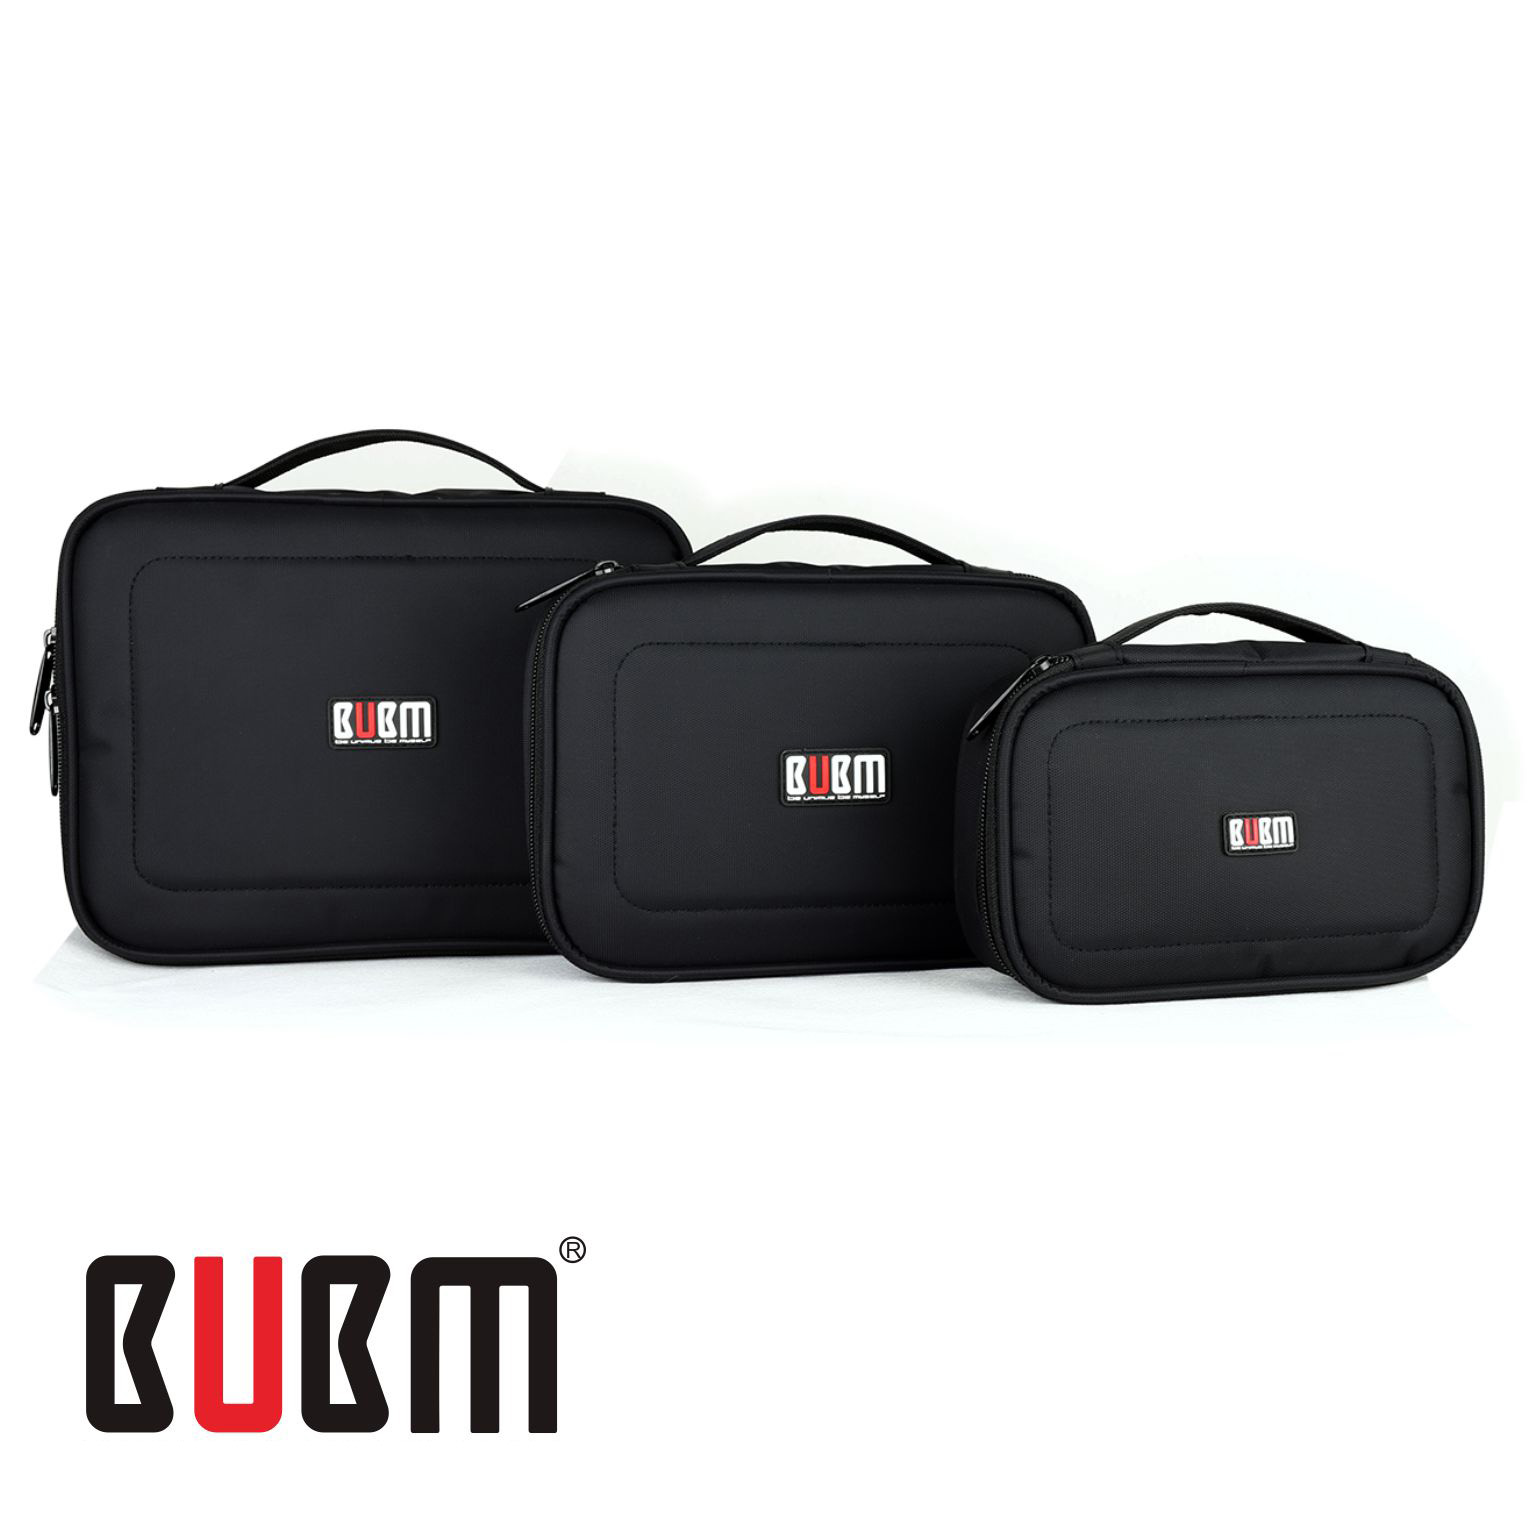 цена на BUBM 3 Pcs/Set Black Waterproof Portable Travel Organizer Case Functional Cosmetic Bag For iPad Mini iPhone Gopro Camera